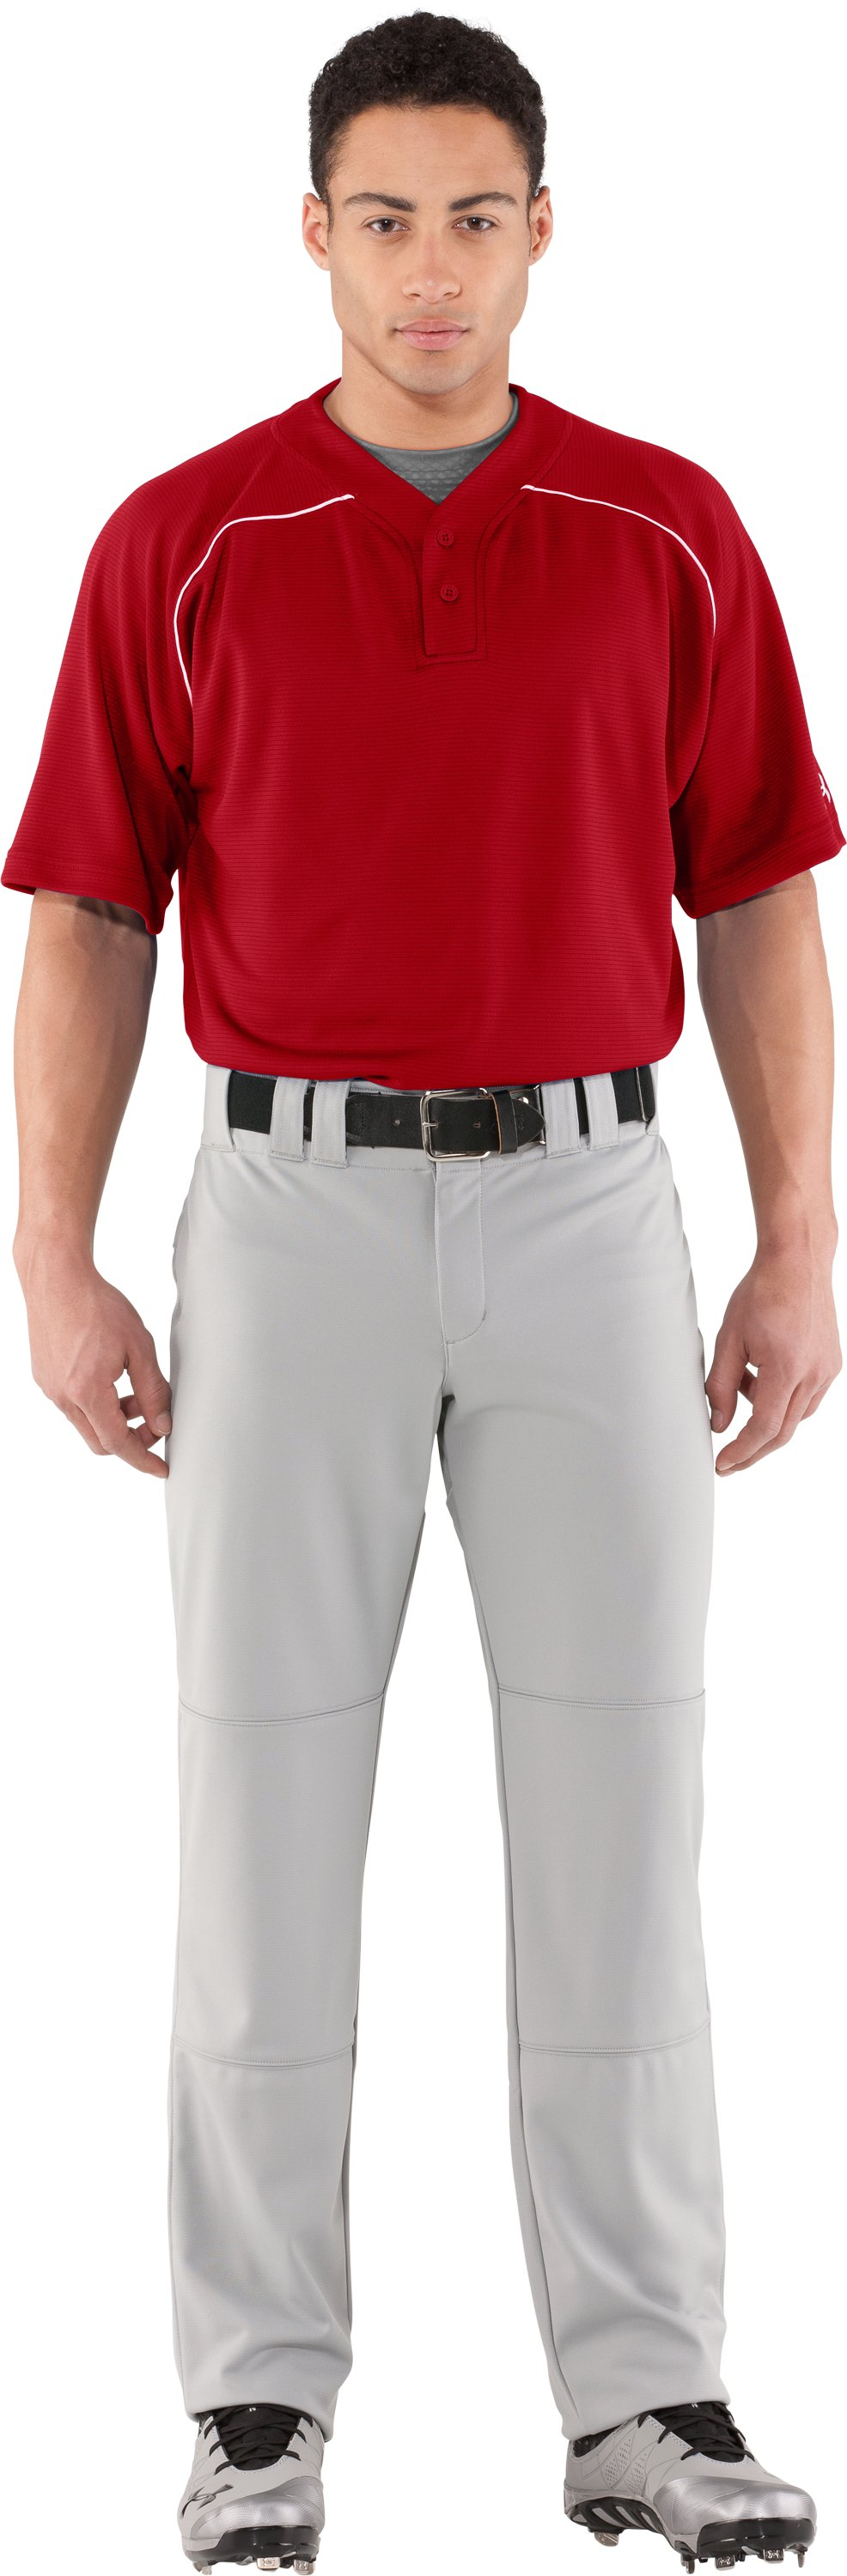 Men's UA Landsdown II Baseball Jersey, Red